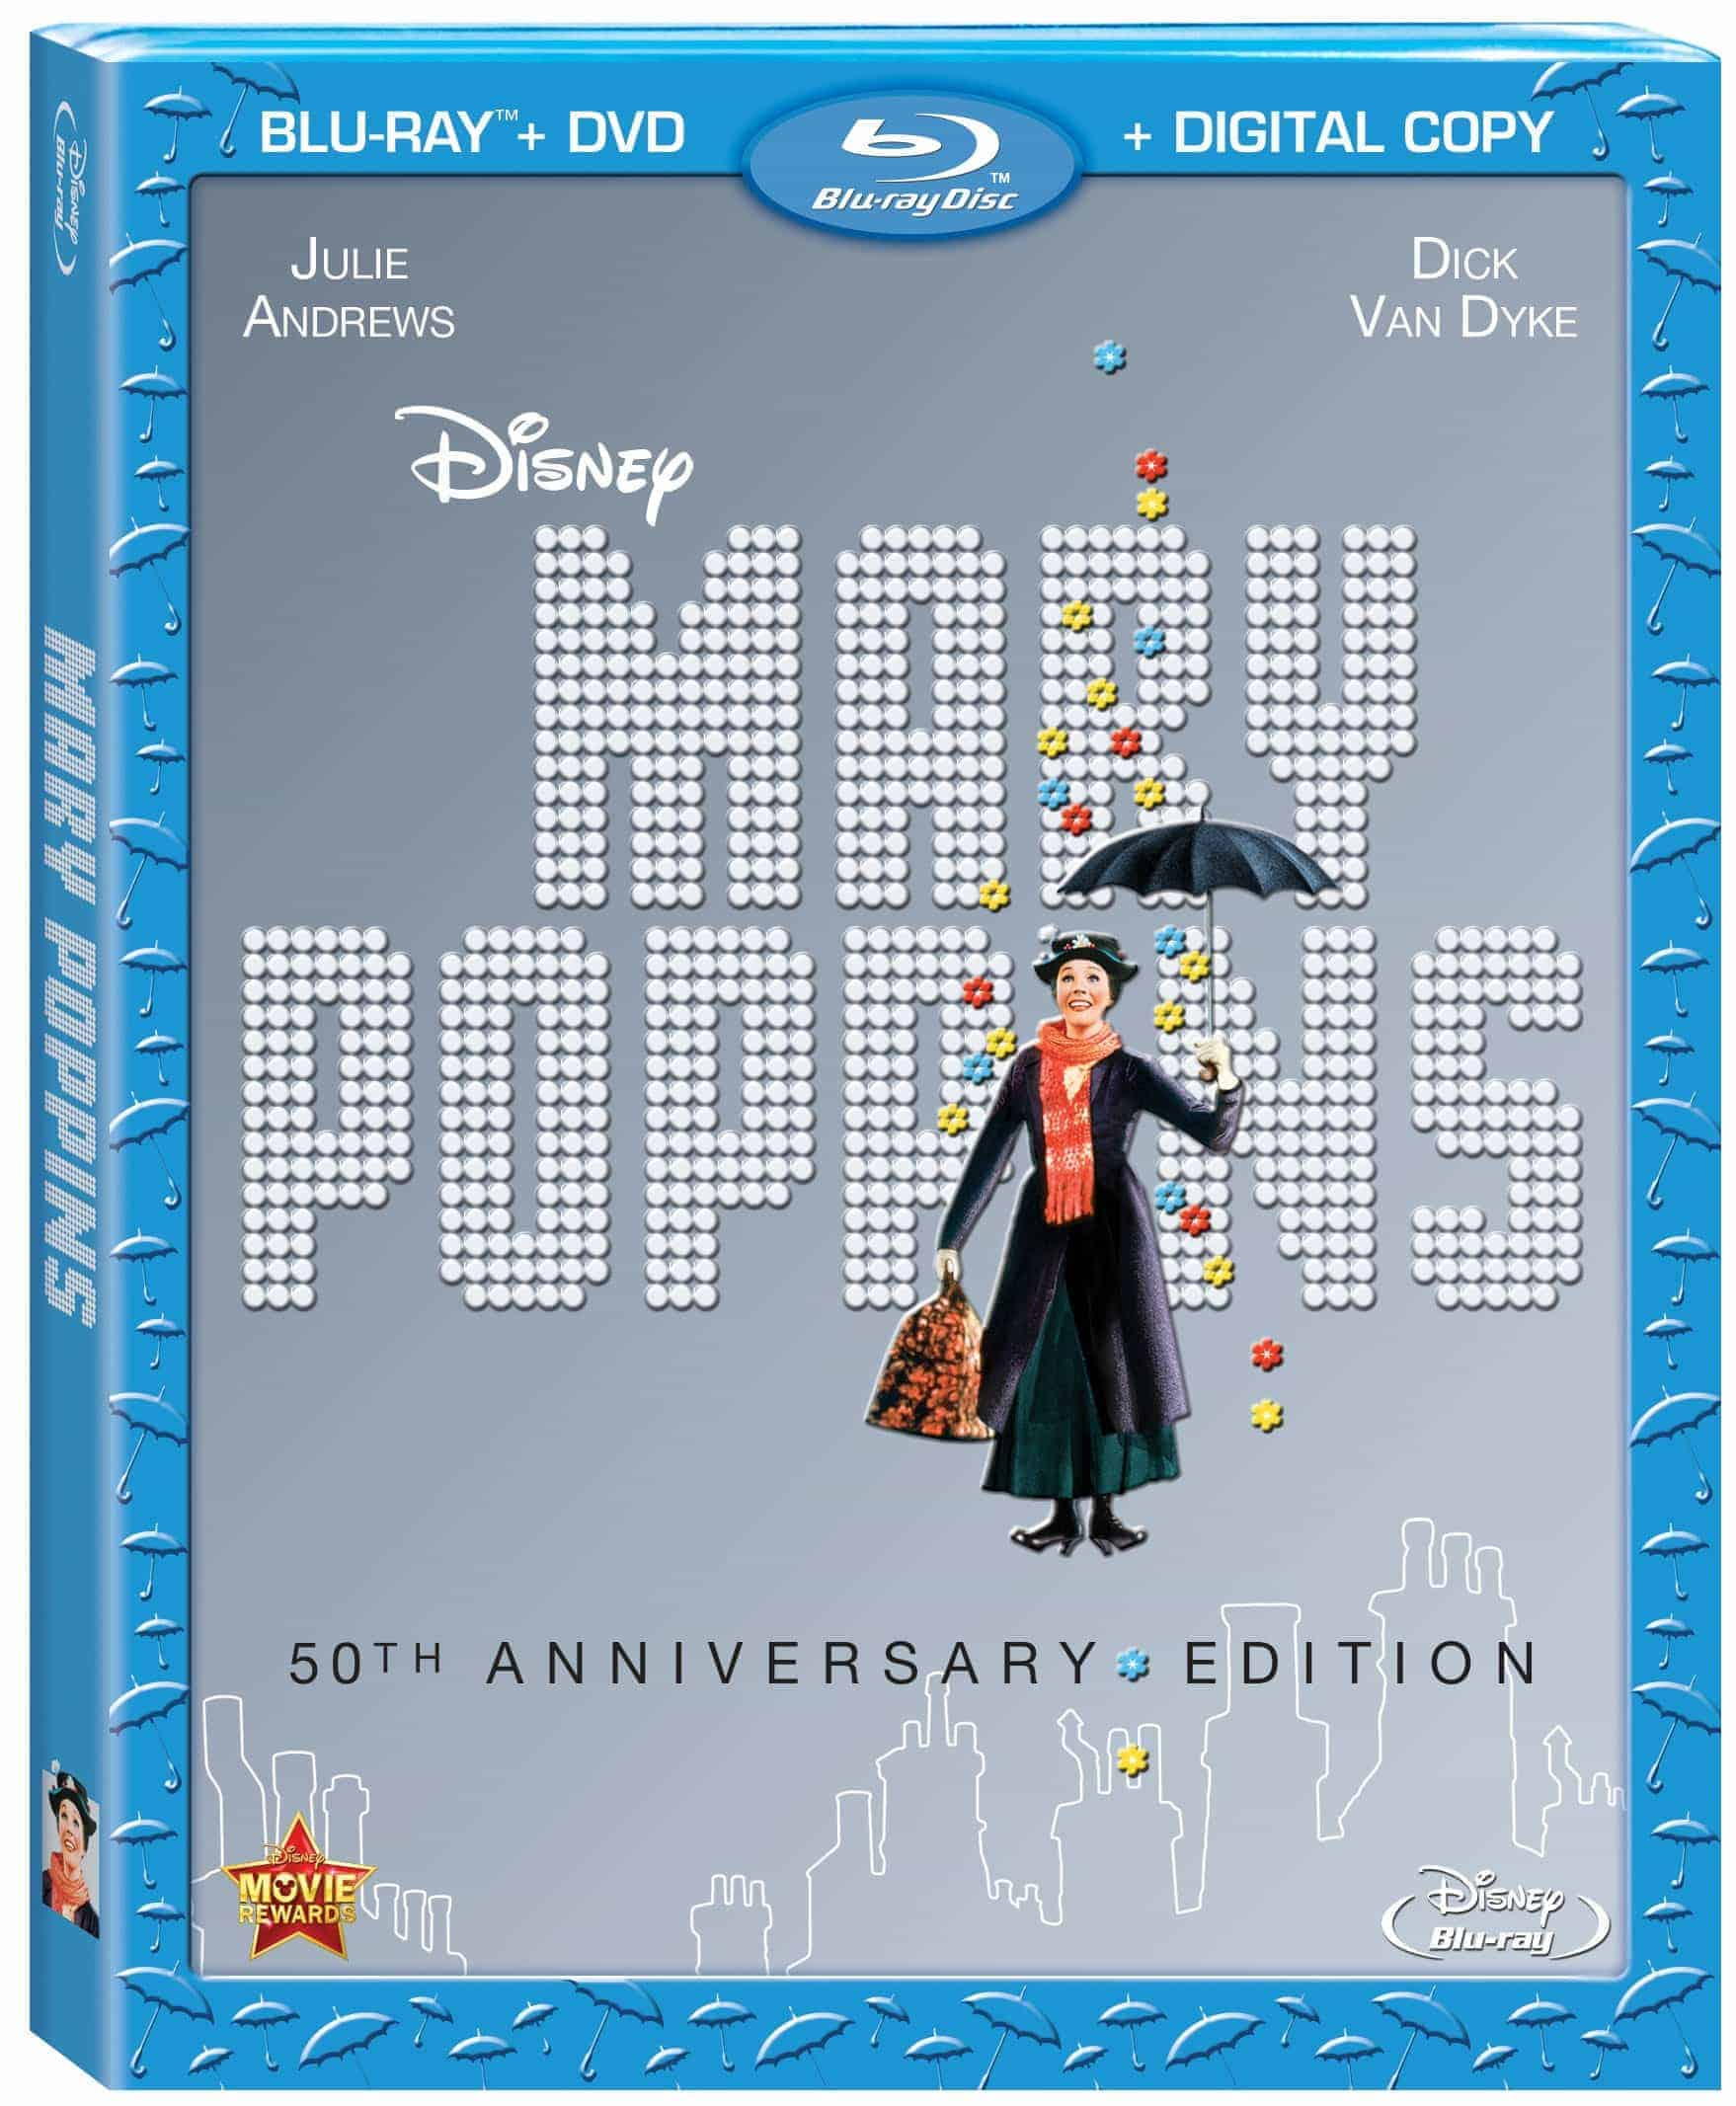 Mary Poppins is turning 50!!